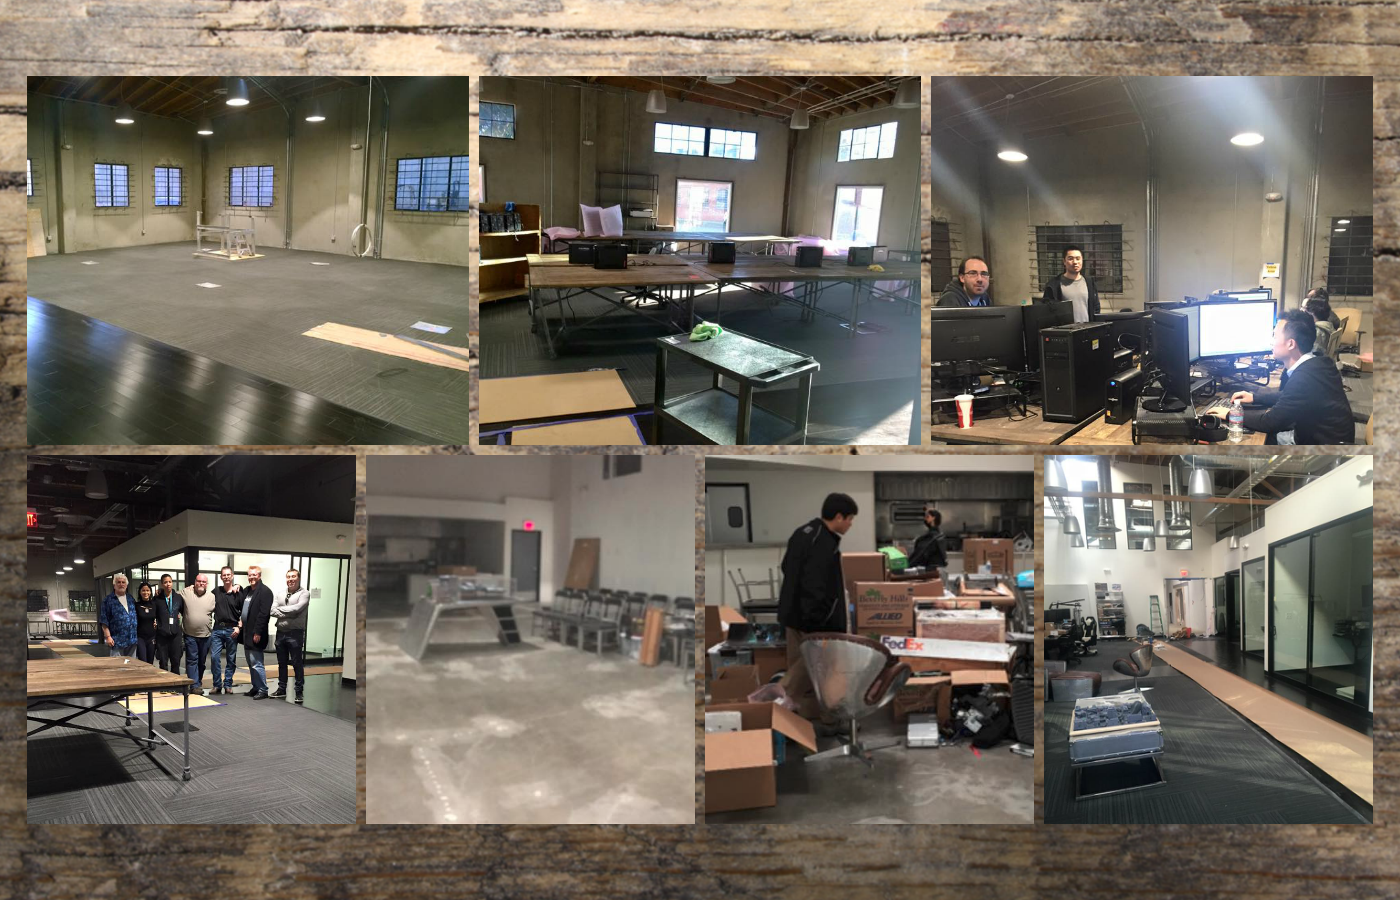 starcitizencaliforniaofficeconstruction